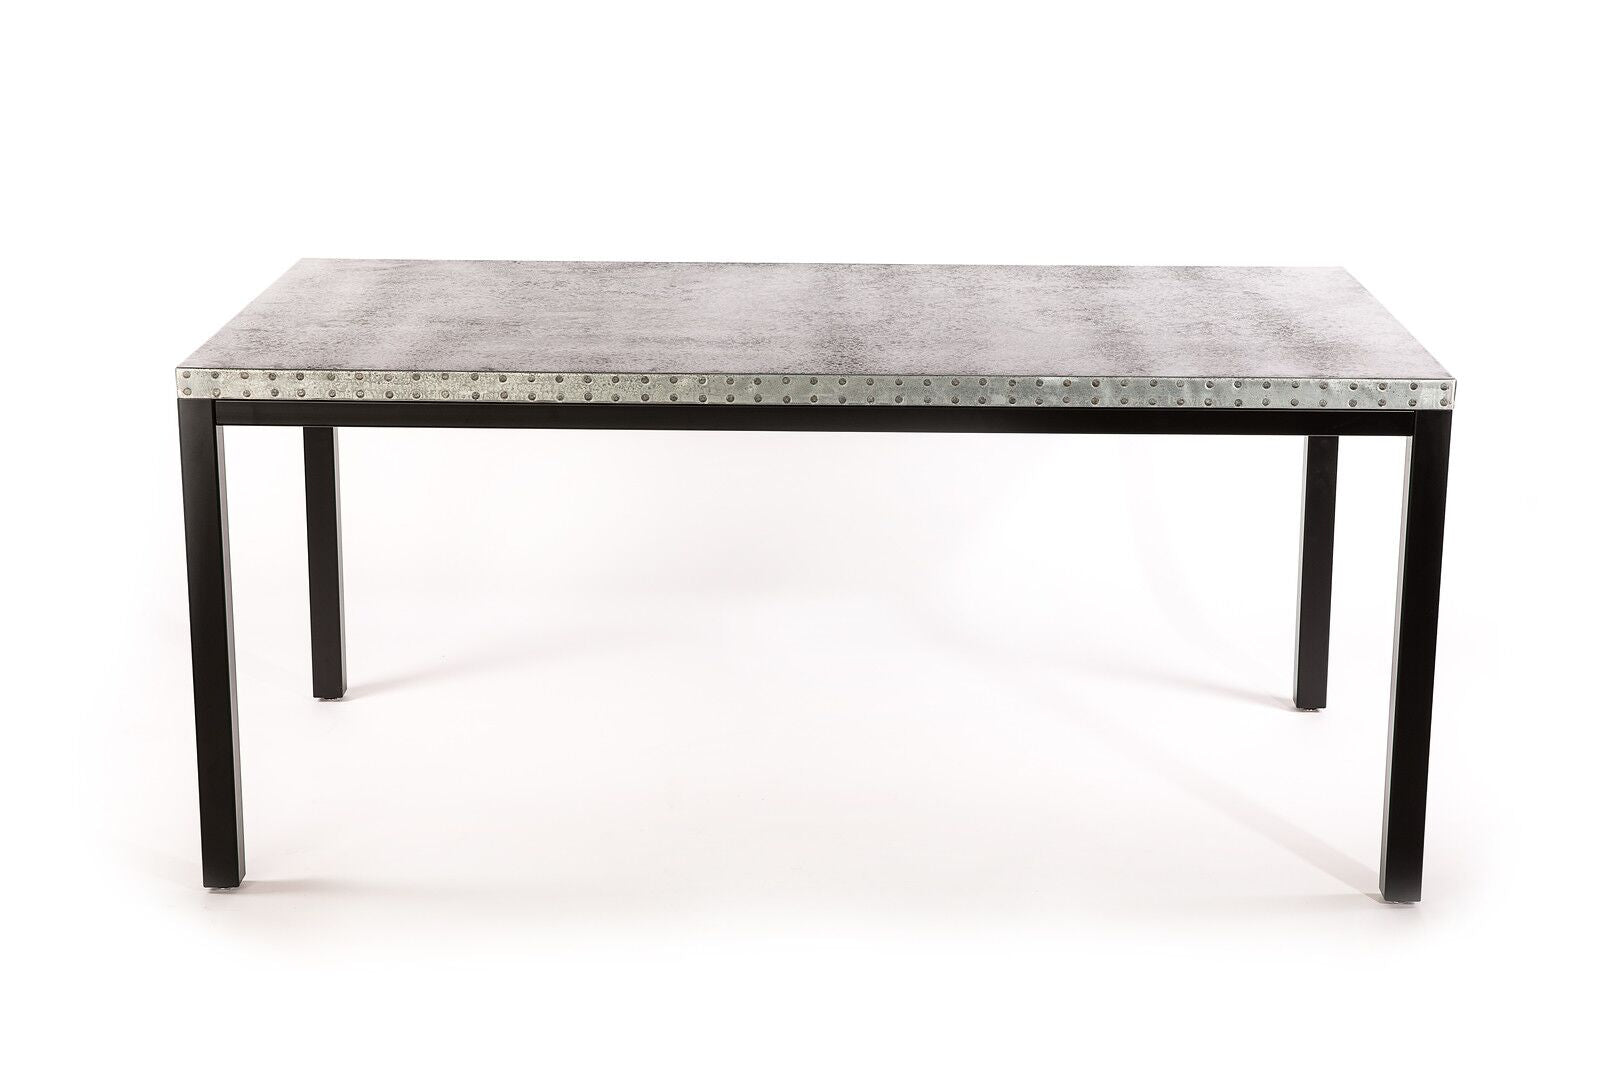 "Zinc Rectangular Table | Brooklyn Table | CLASSIC | Black | CUSTOM SIZE 60""L 32""W 30""H 